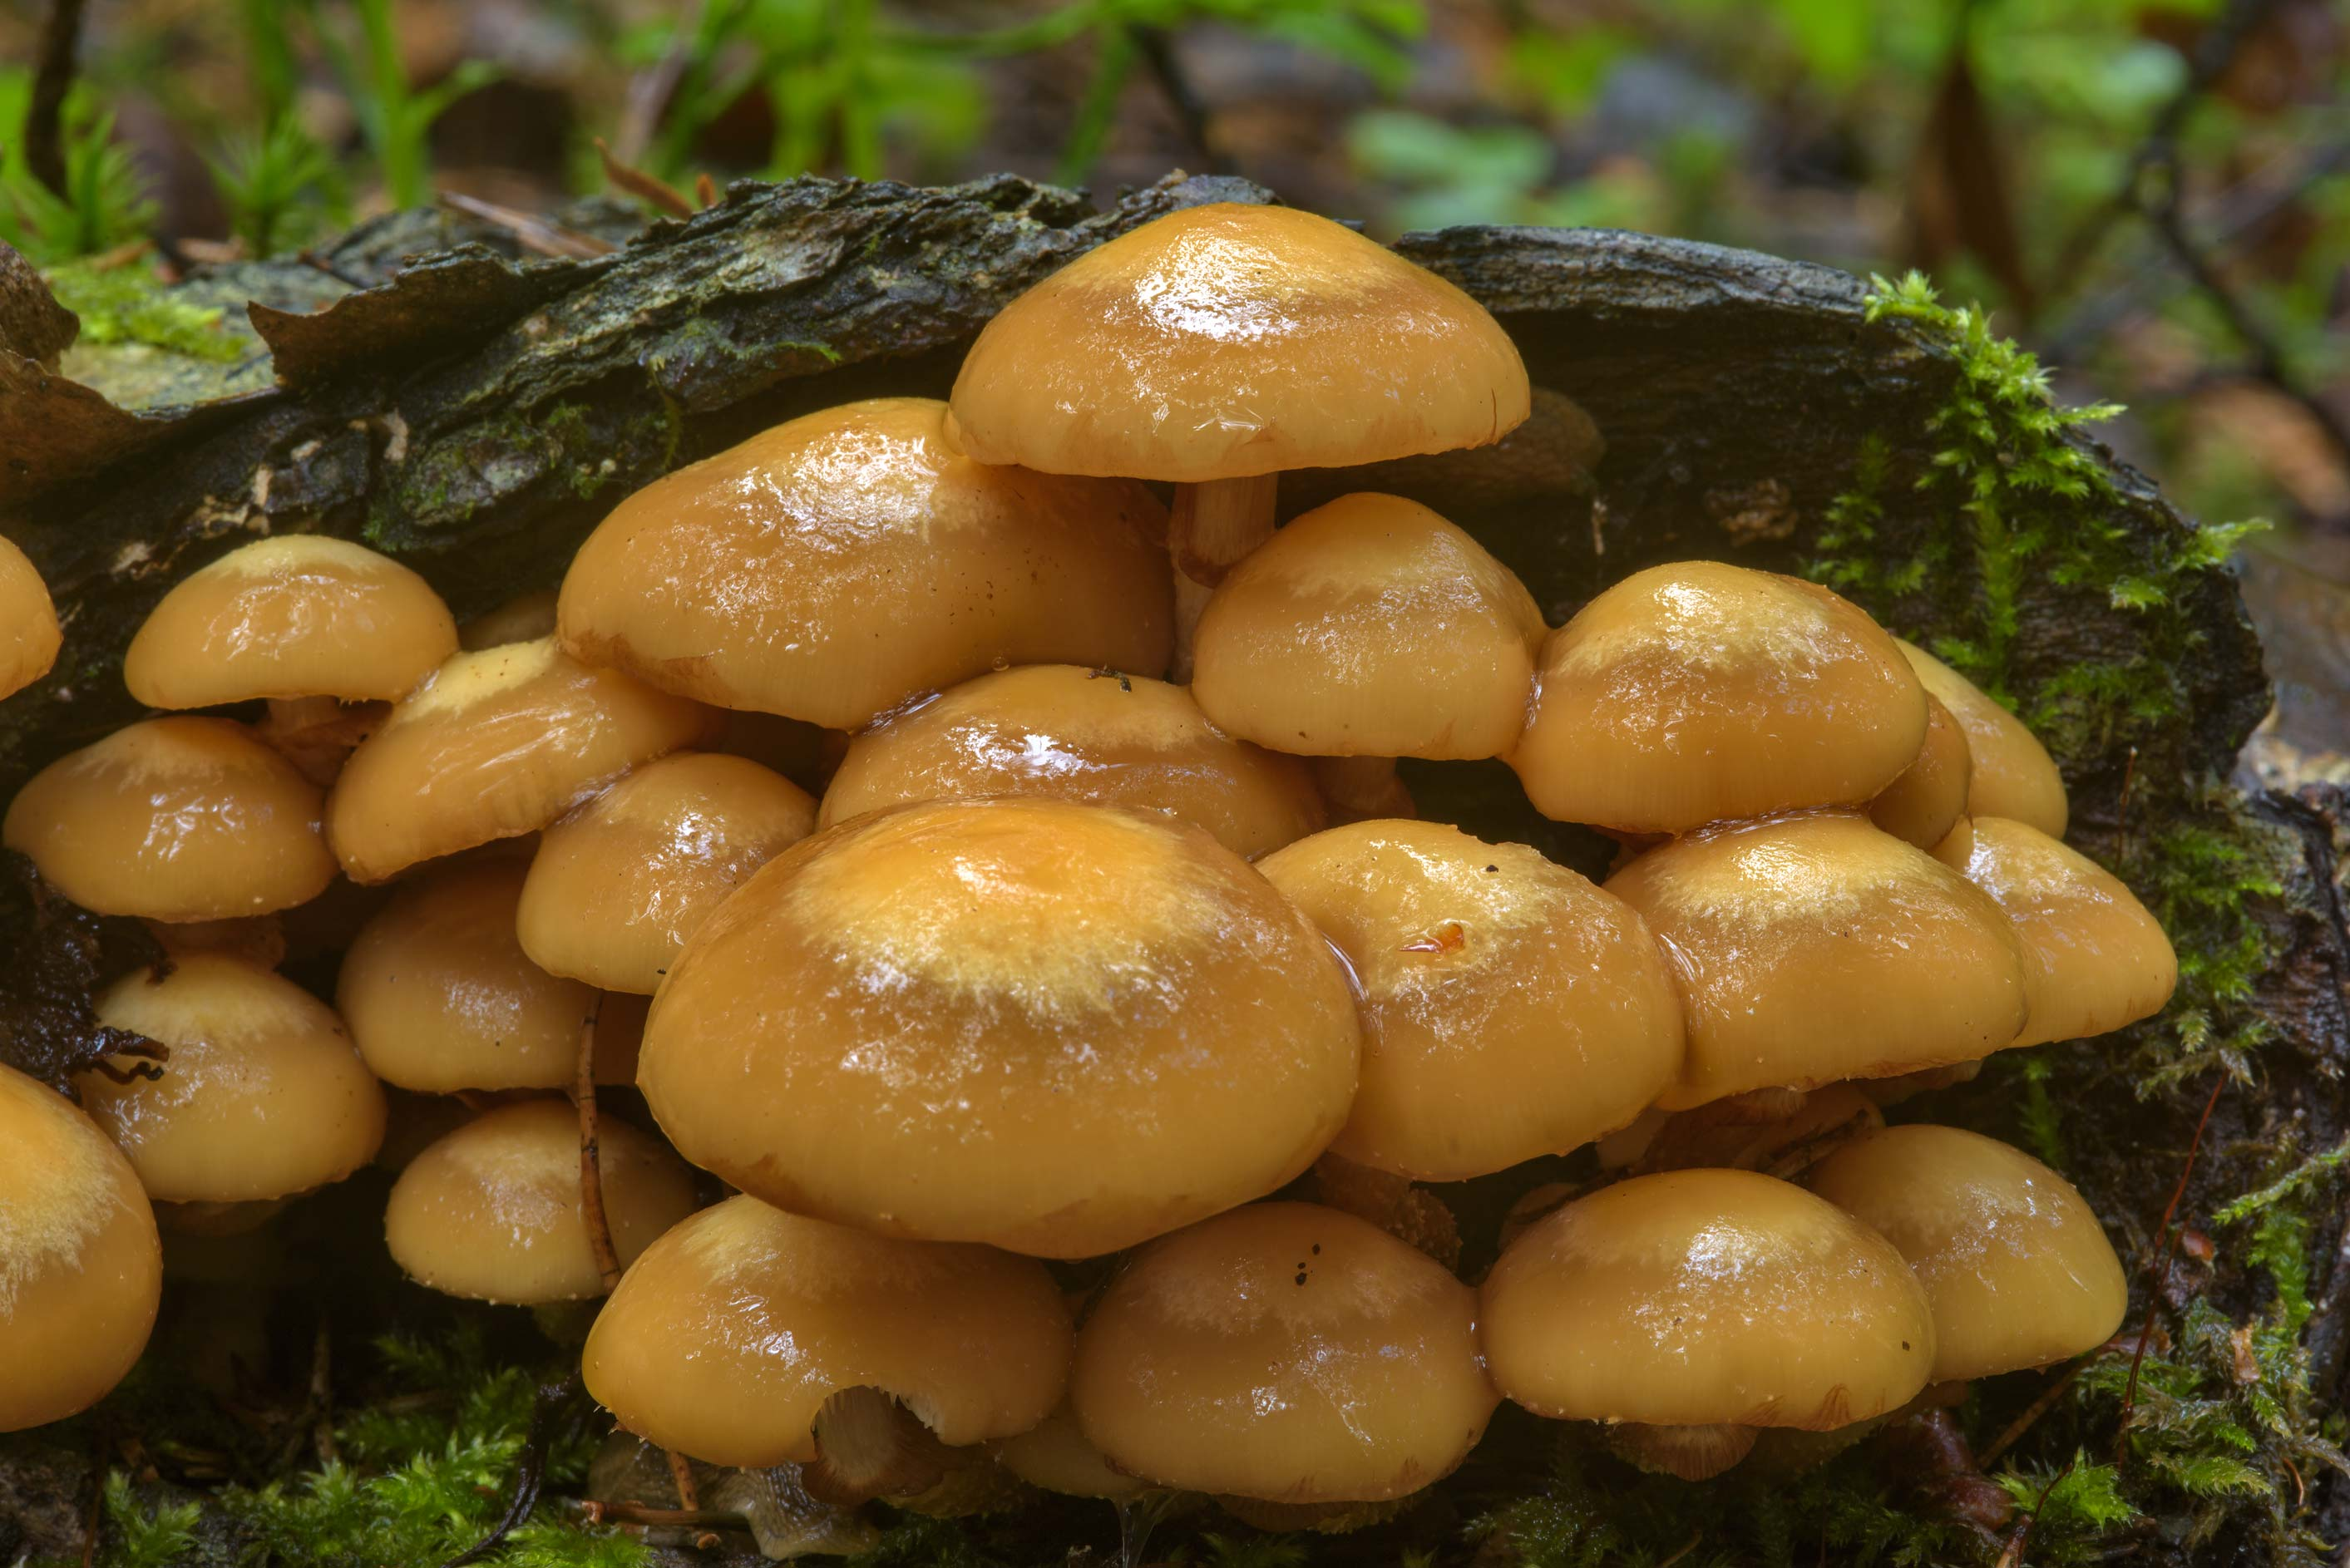 Sheathed woodtuft mushrooms (Kuehneromyces...west from St.Petersburg. Russia